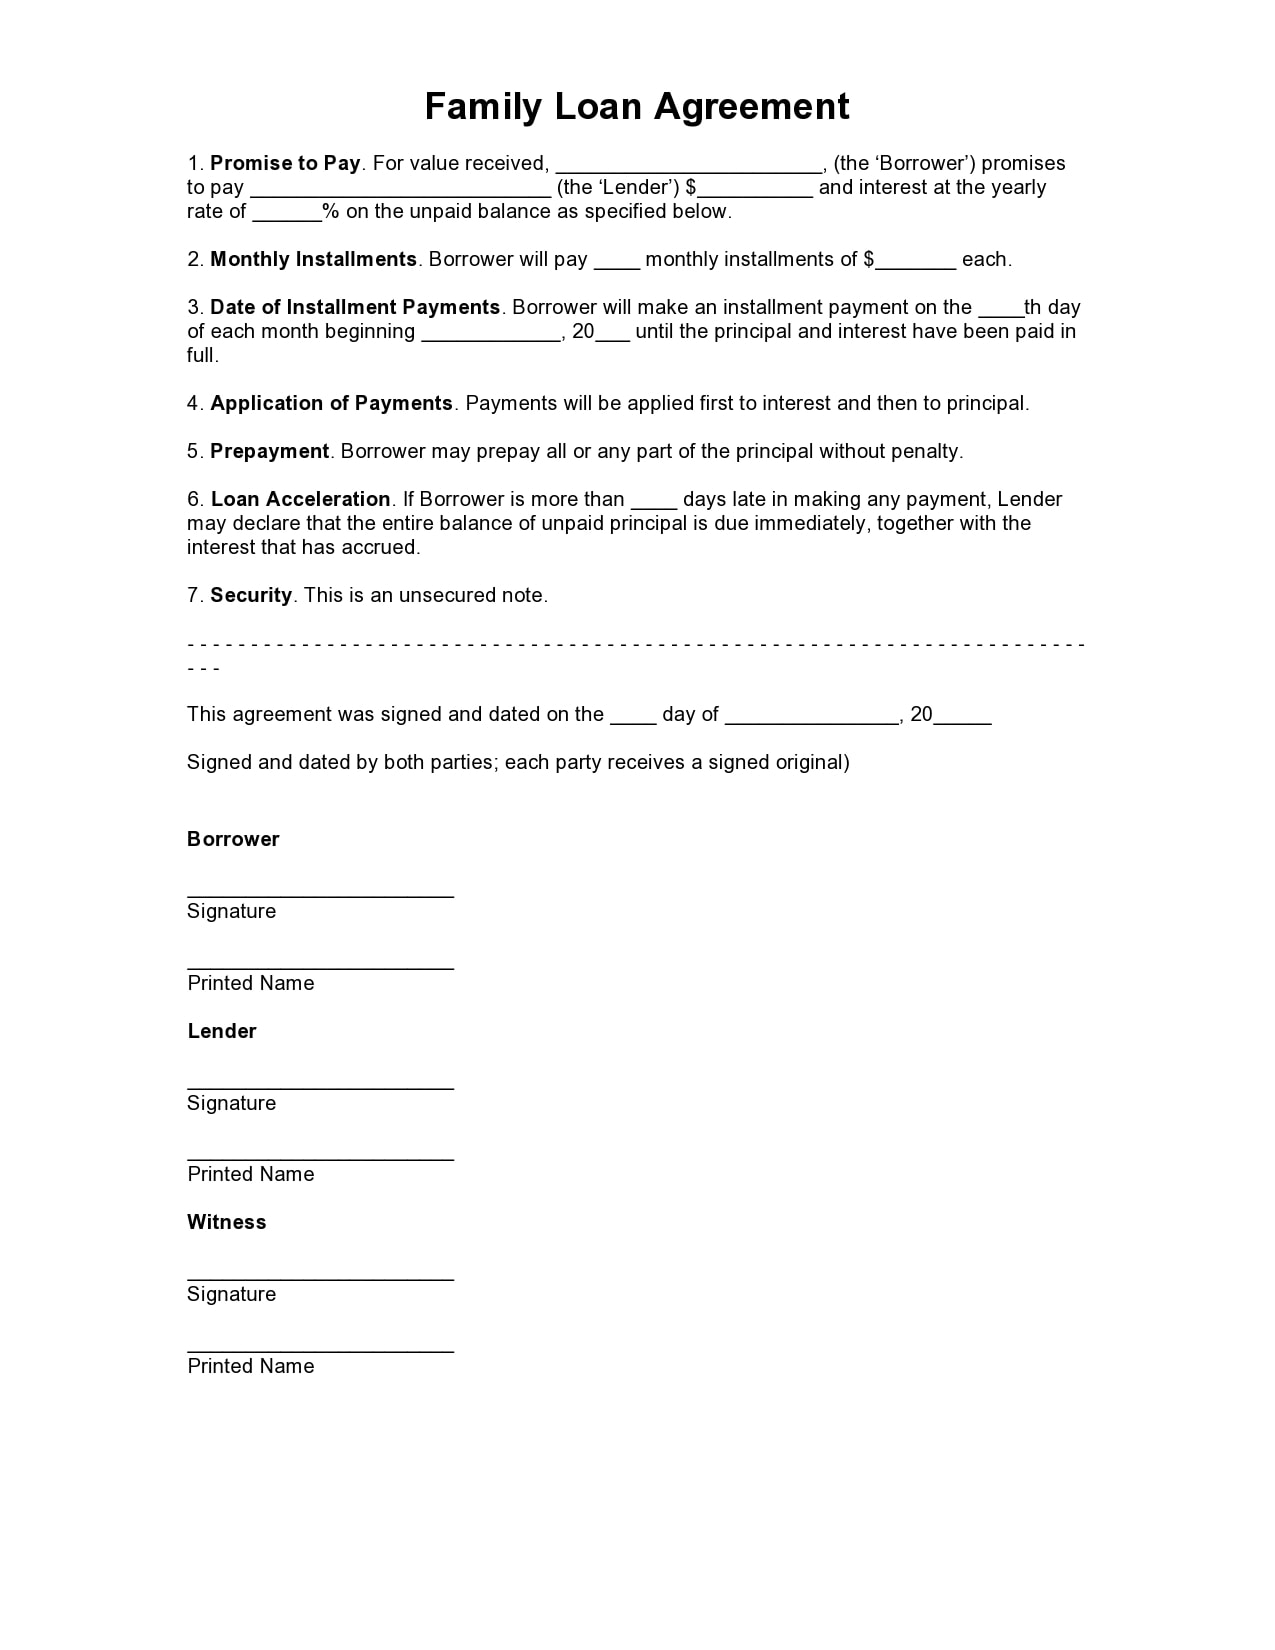 30 Simple Family Loan Agreement Templates 30 Free